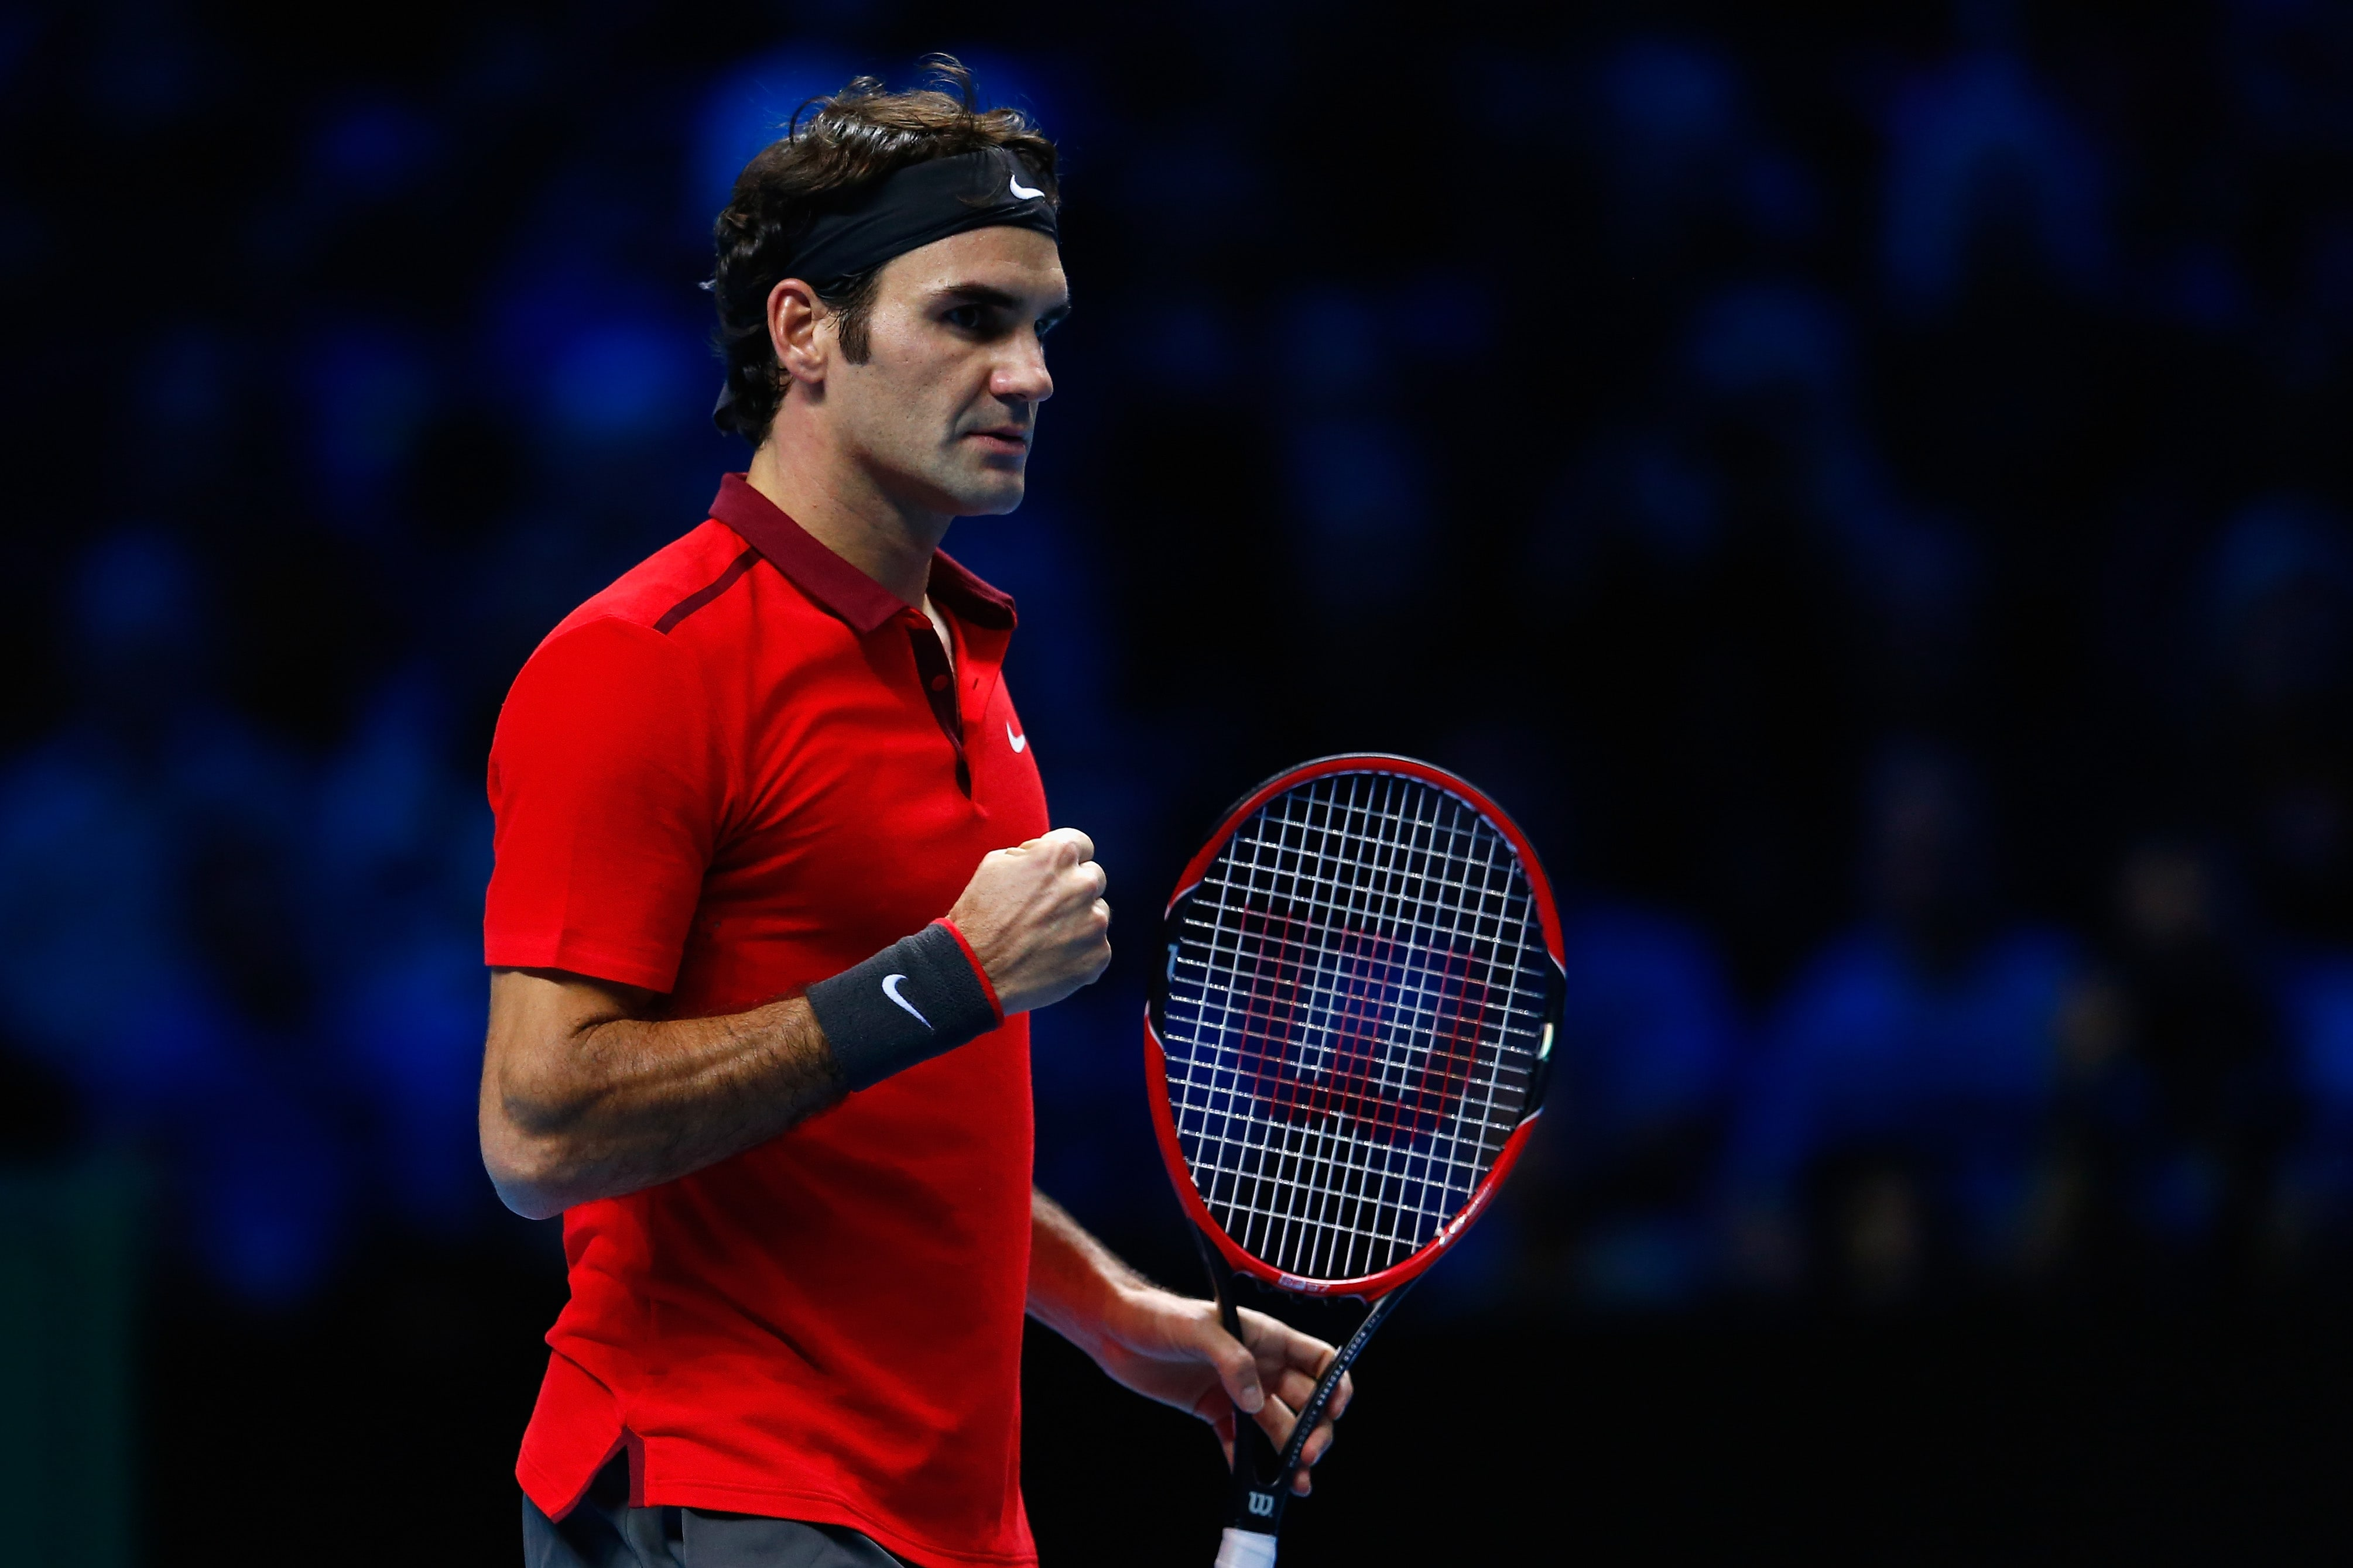 Roger Federer PC wallpapers